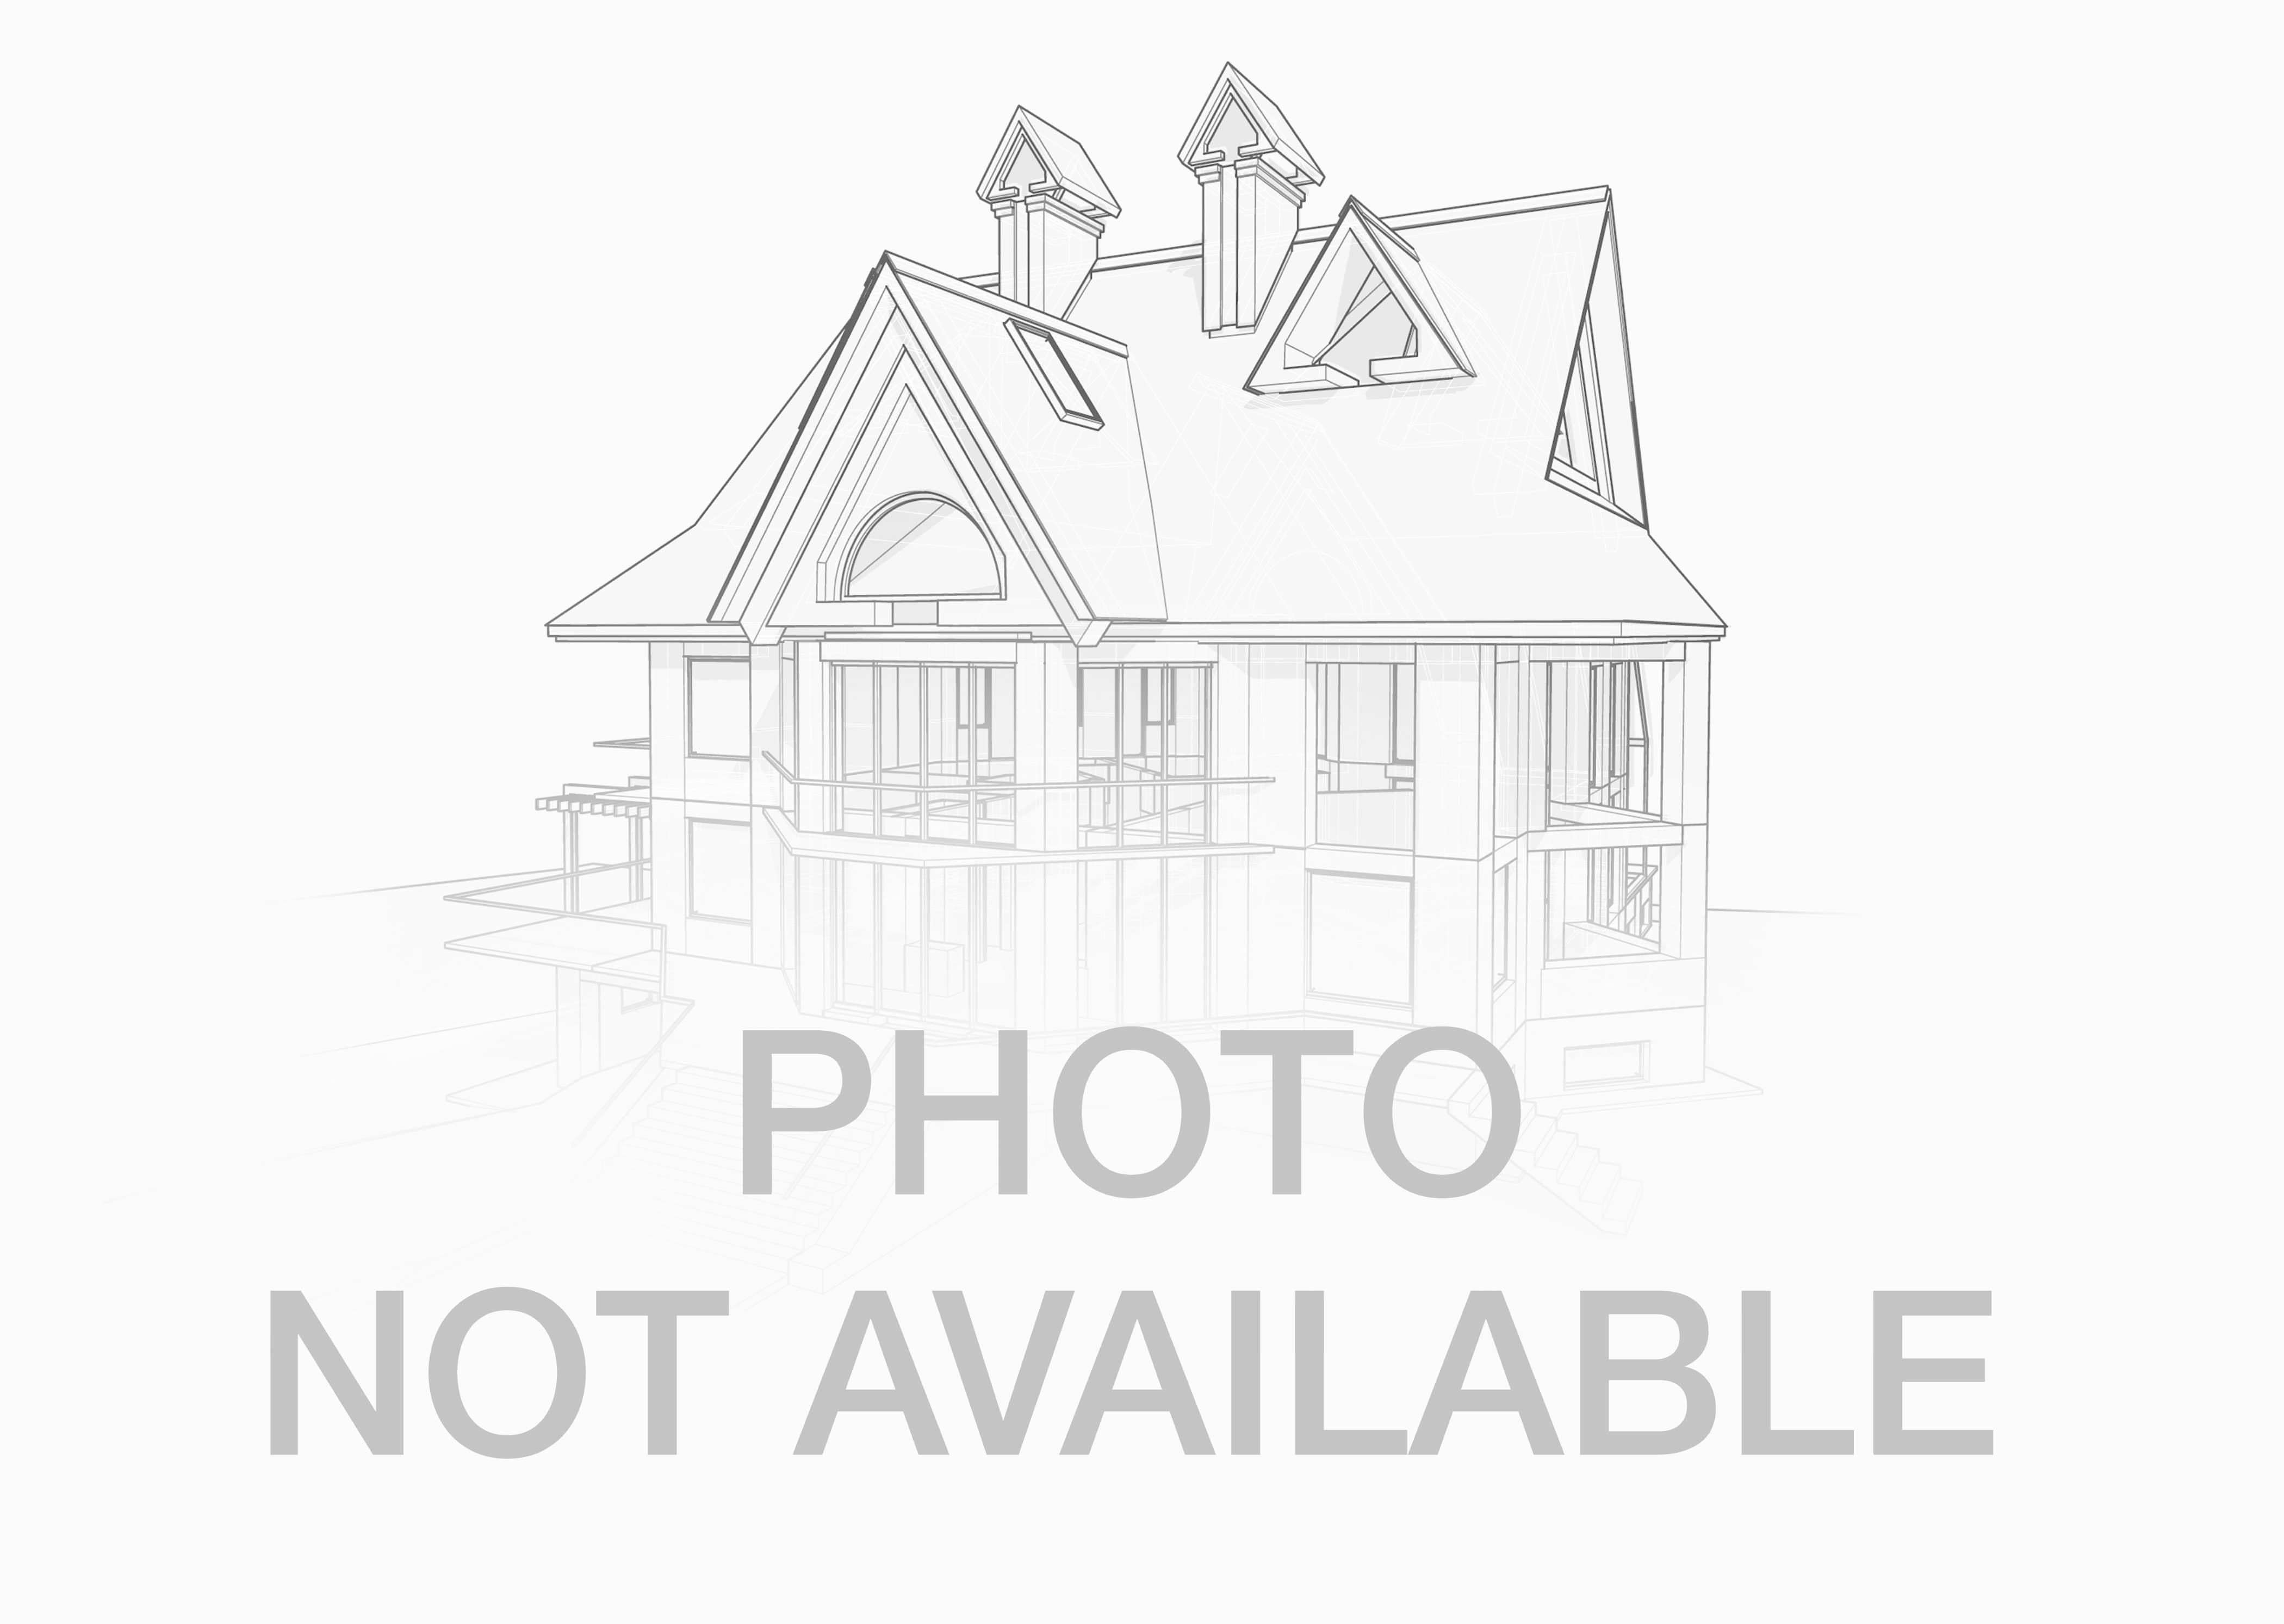 queen annes county mass property search